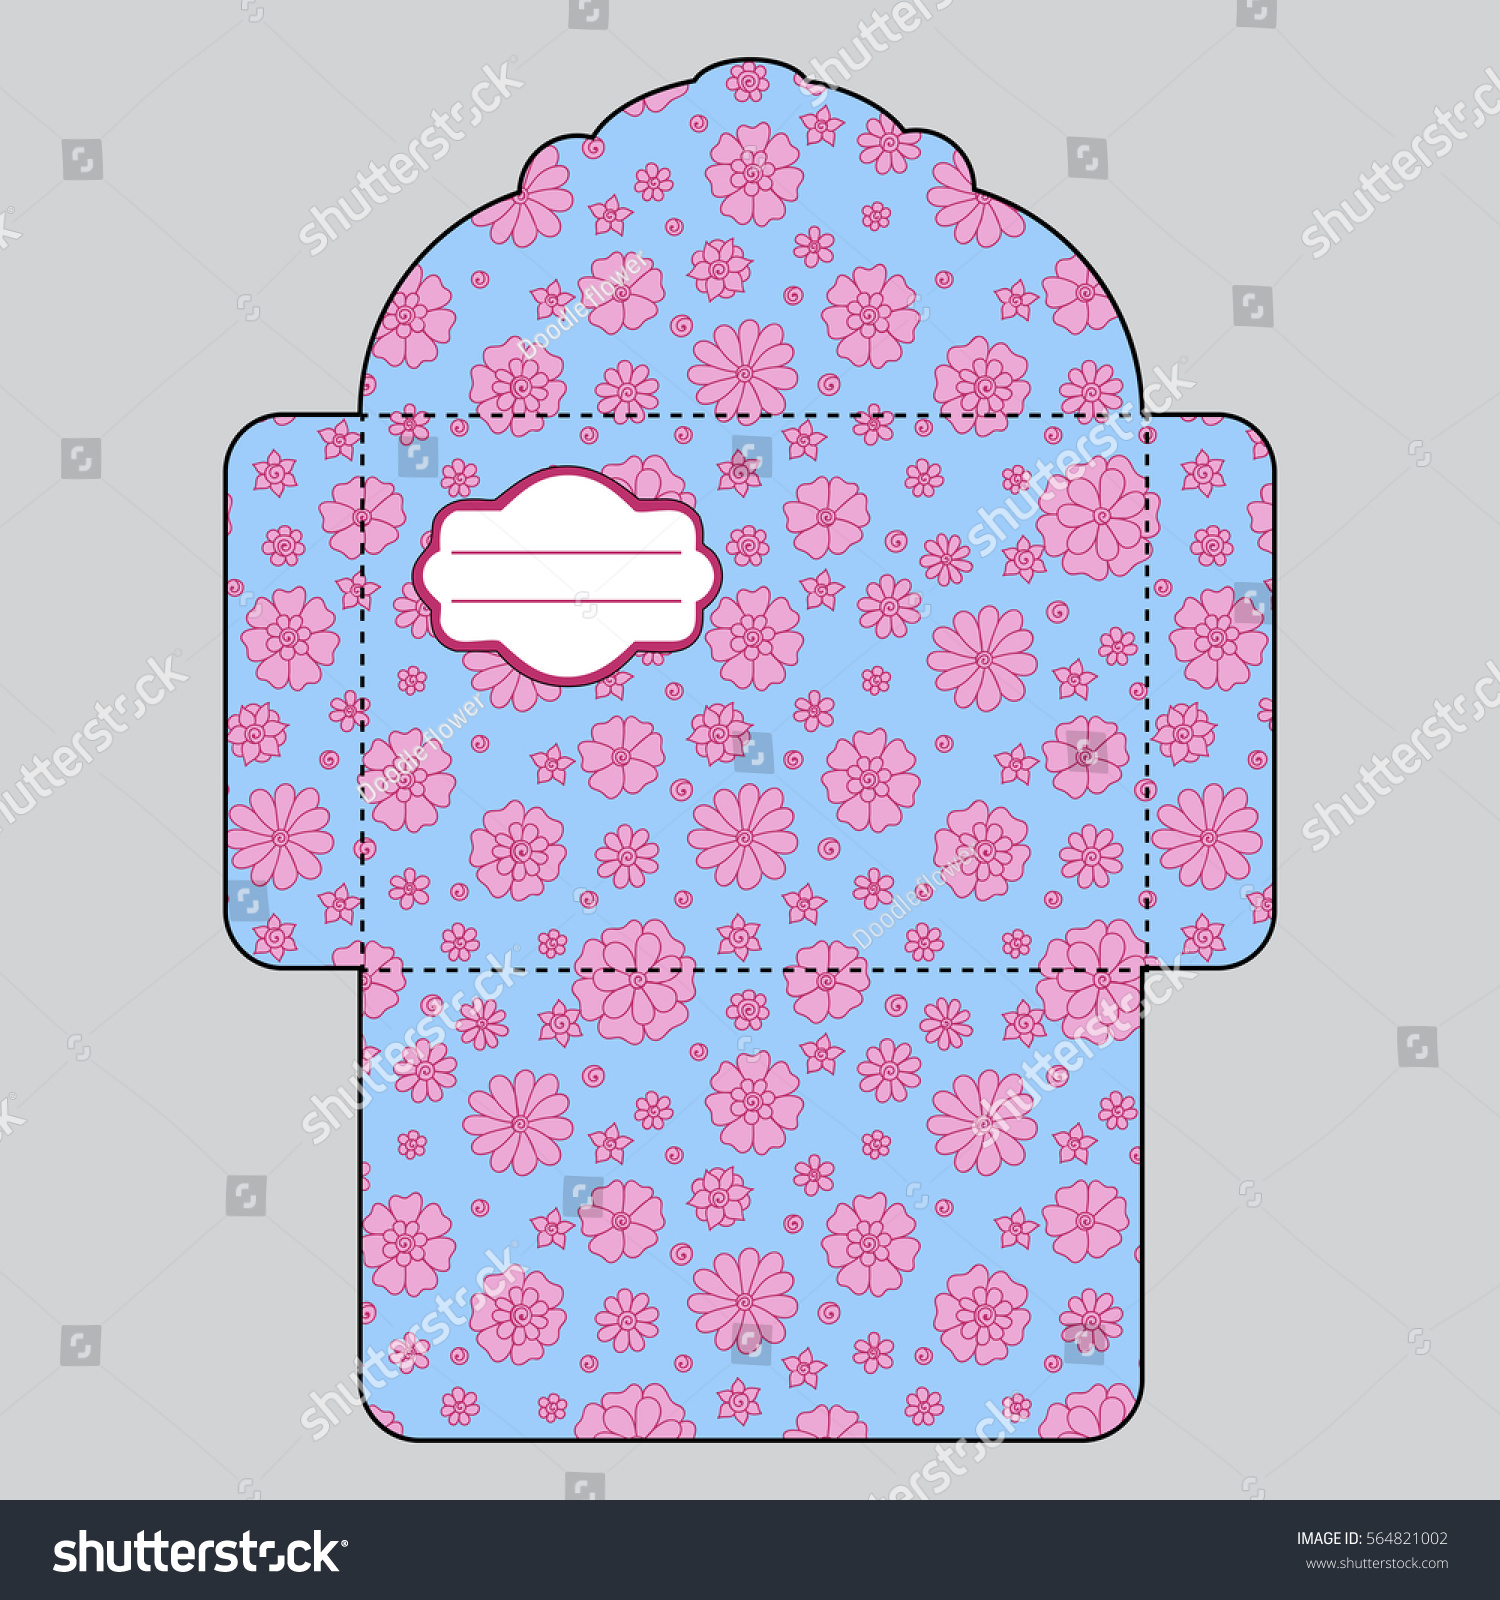 Drawing Greeting Envelopes Weddings Celebrations Office Stock Vector